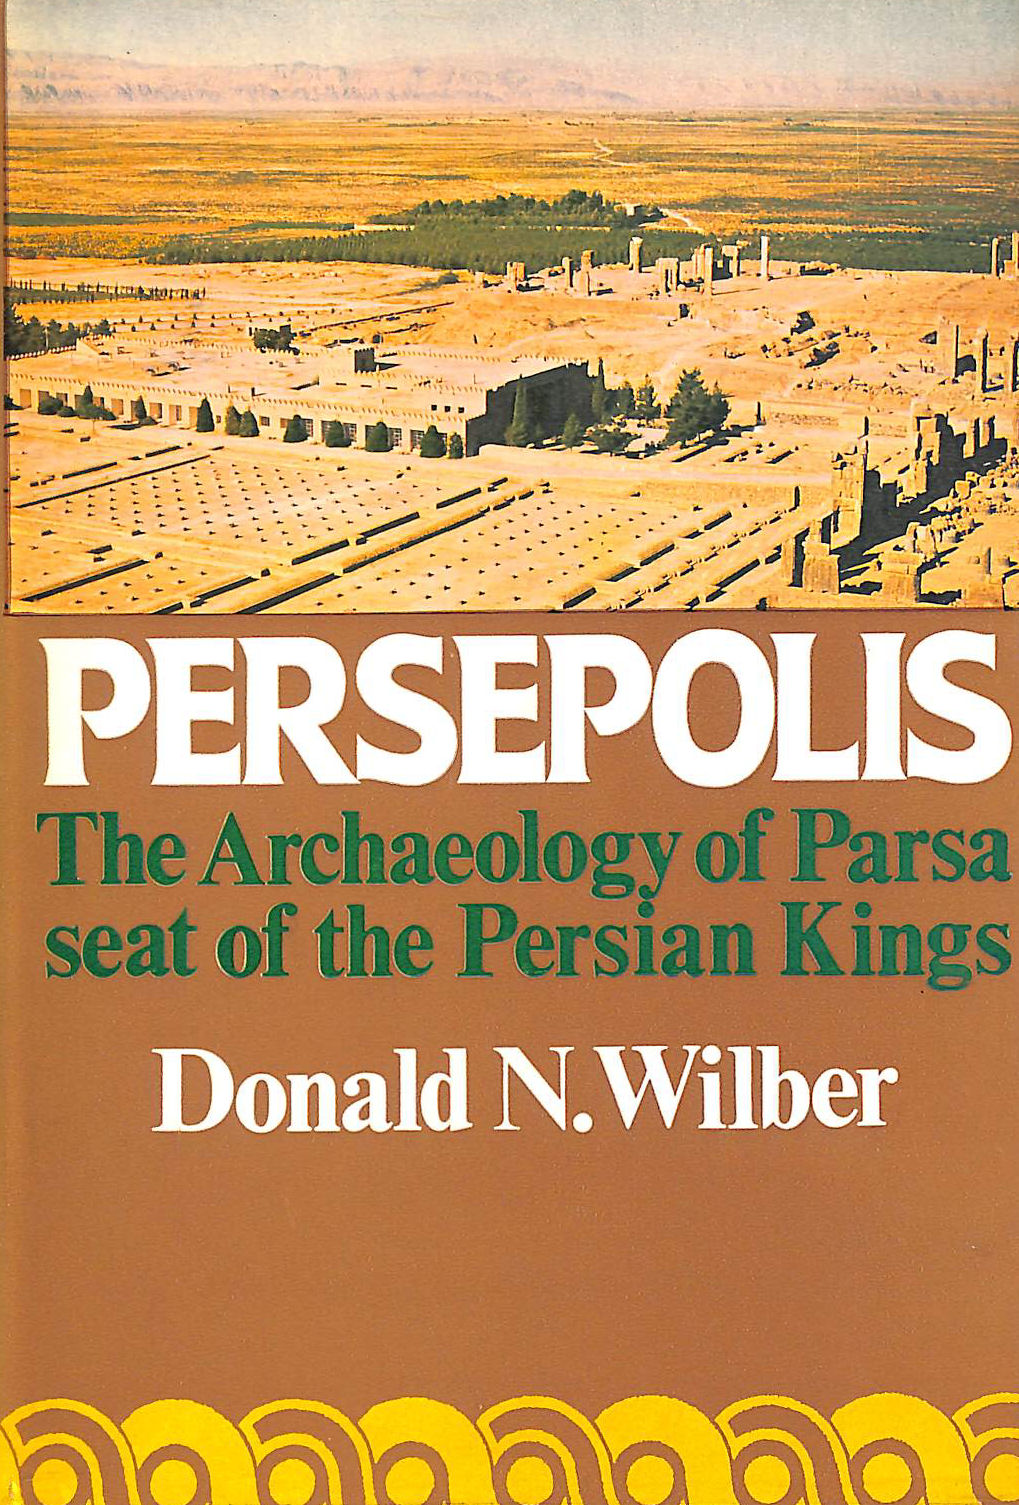 Image for Persepolis: The Archaeology of Parsa Seat of the Persian Kings